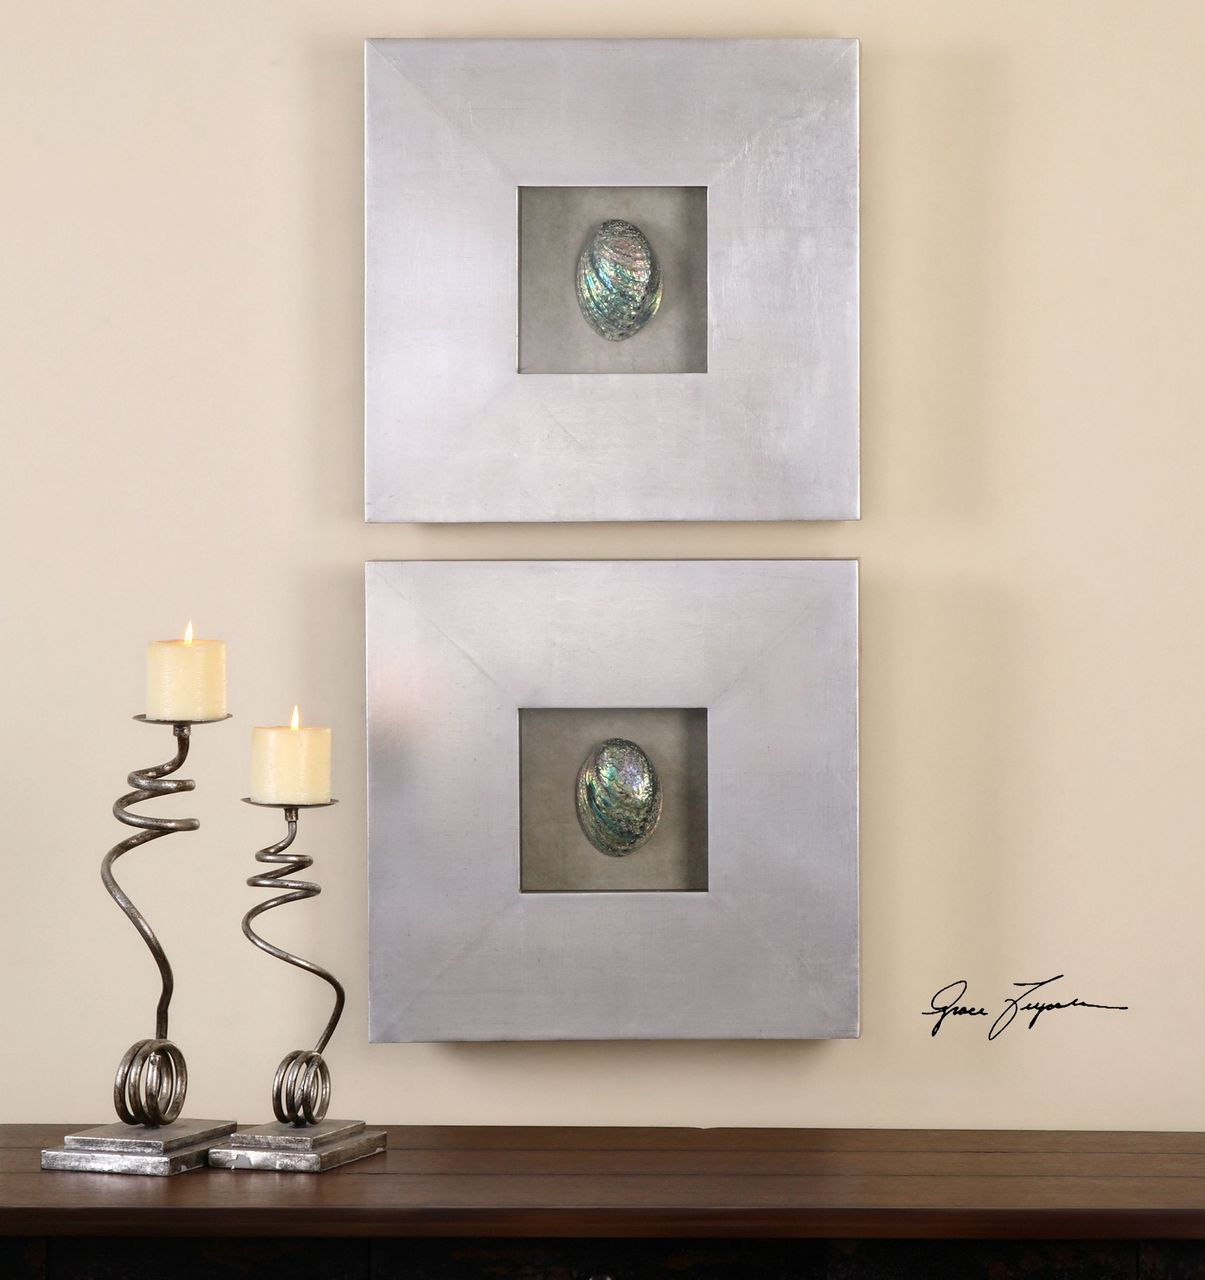 Silver wall decor at home and interior design ideas pictures gallery of silver wall decor unique everything coastal amipublicfo Choice Image